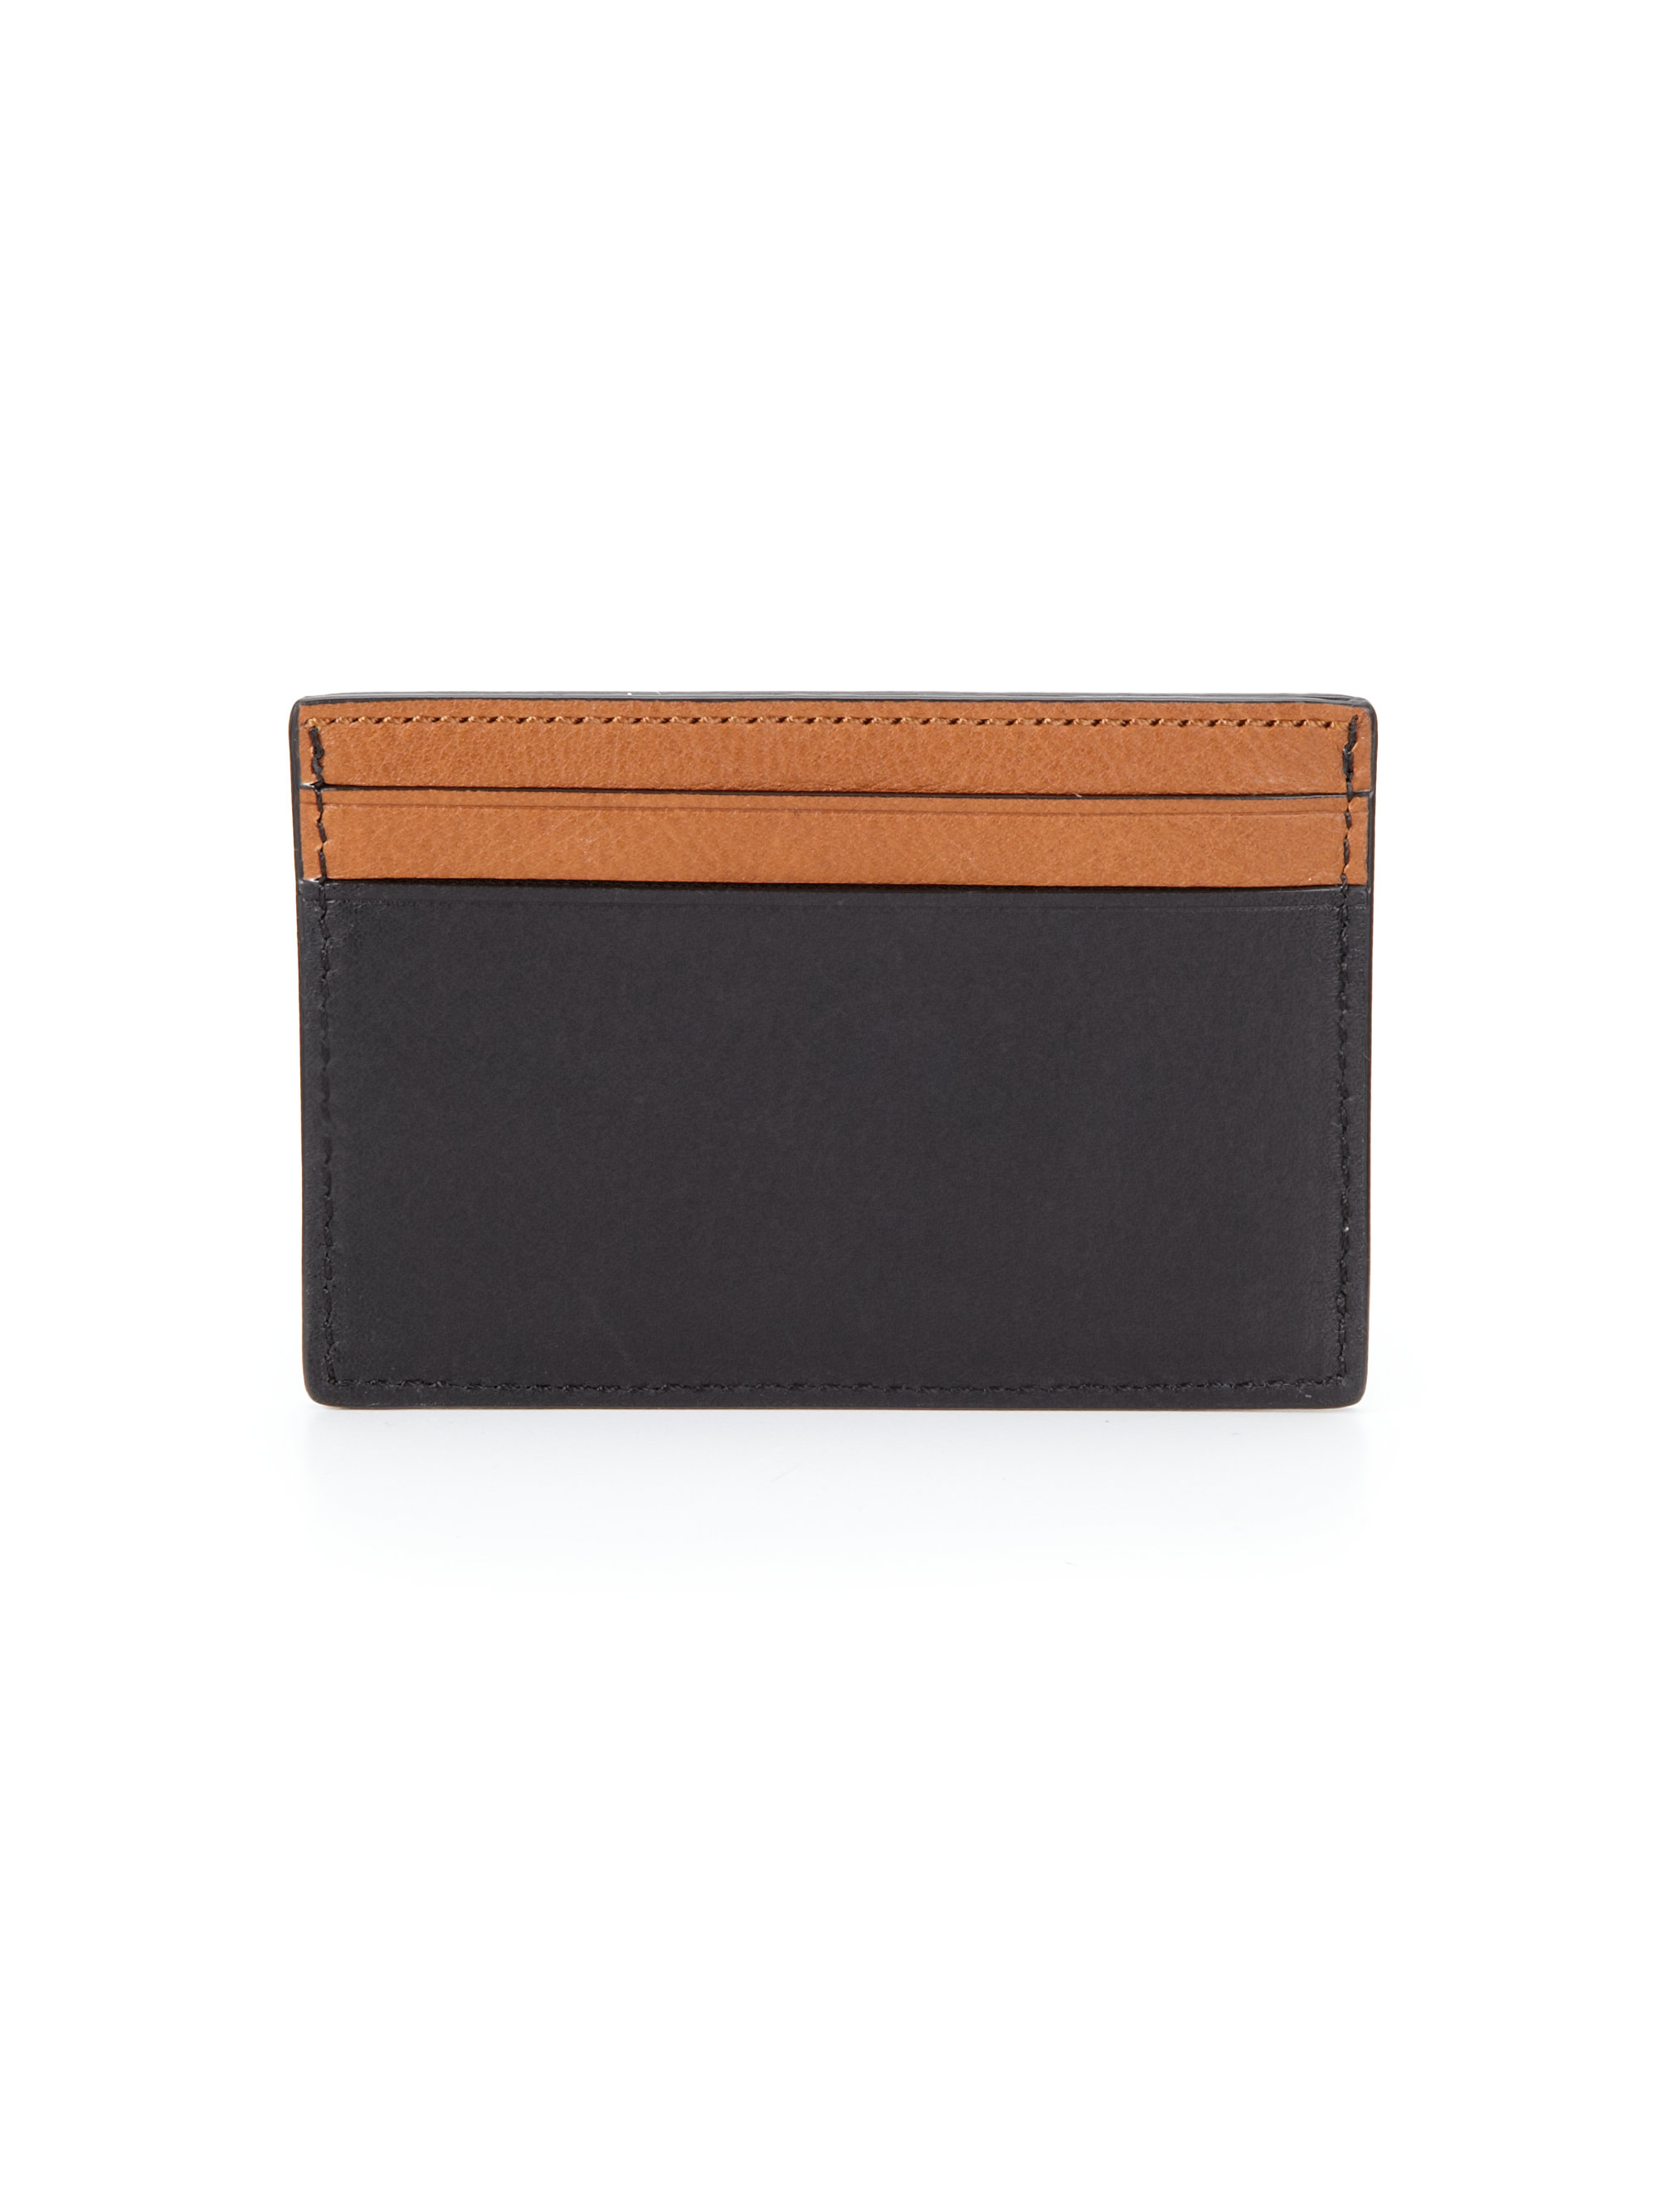 Lyst - Coach Leather Card Case in Black for Men